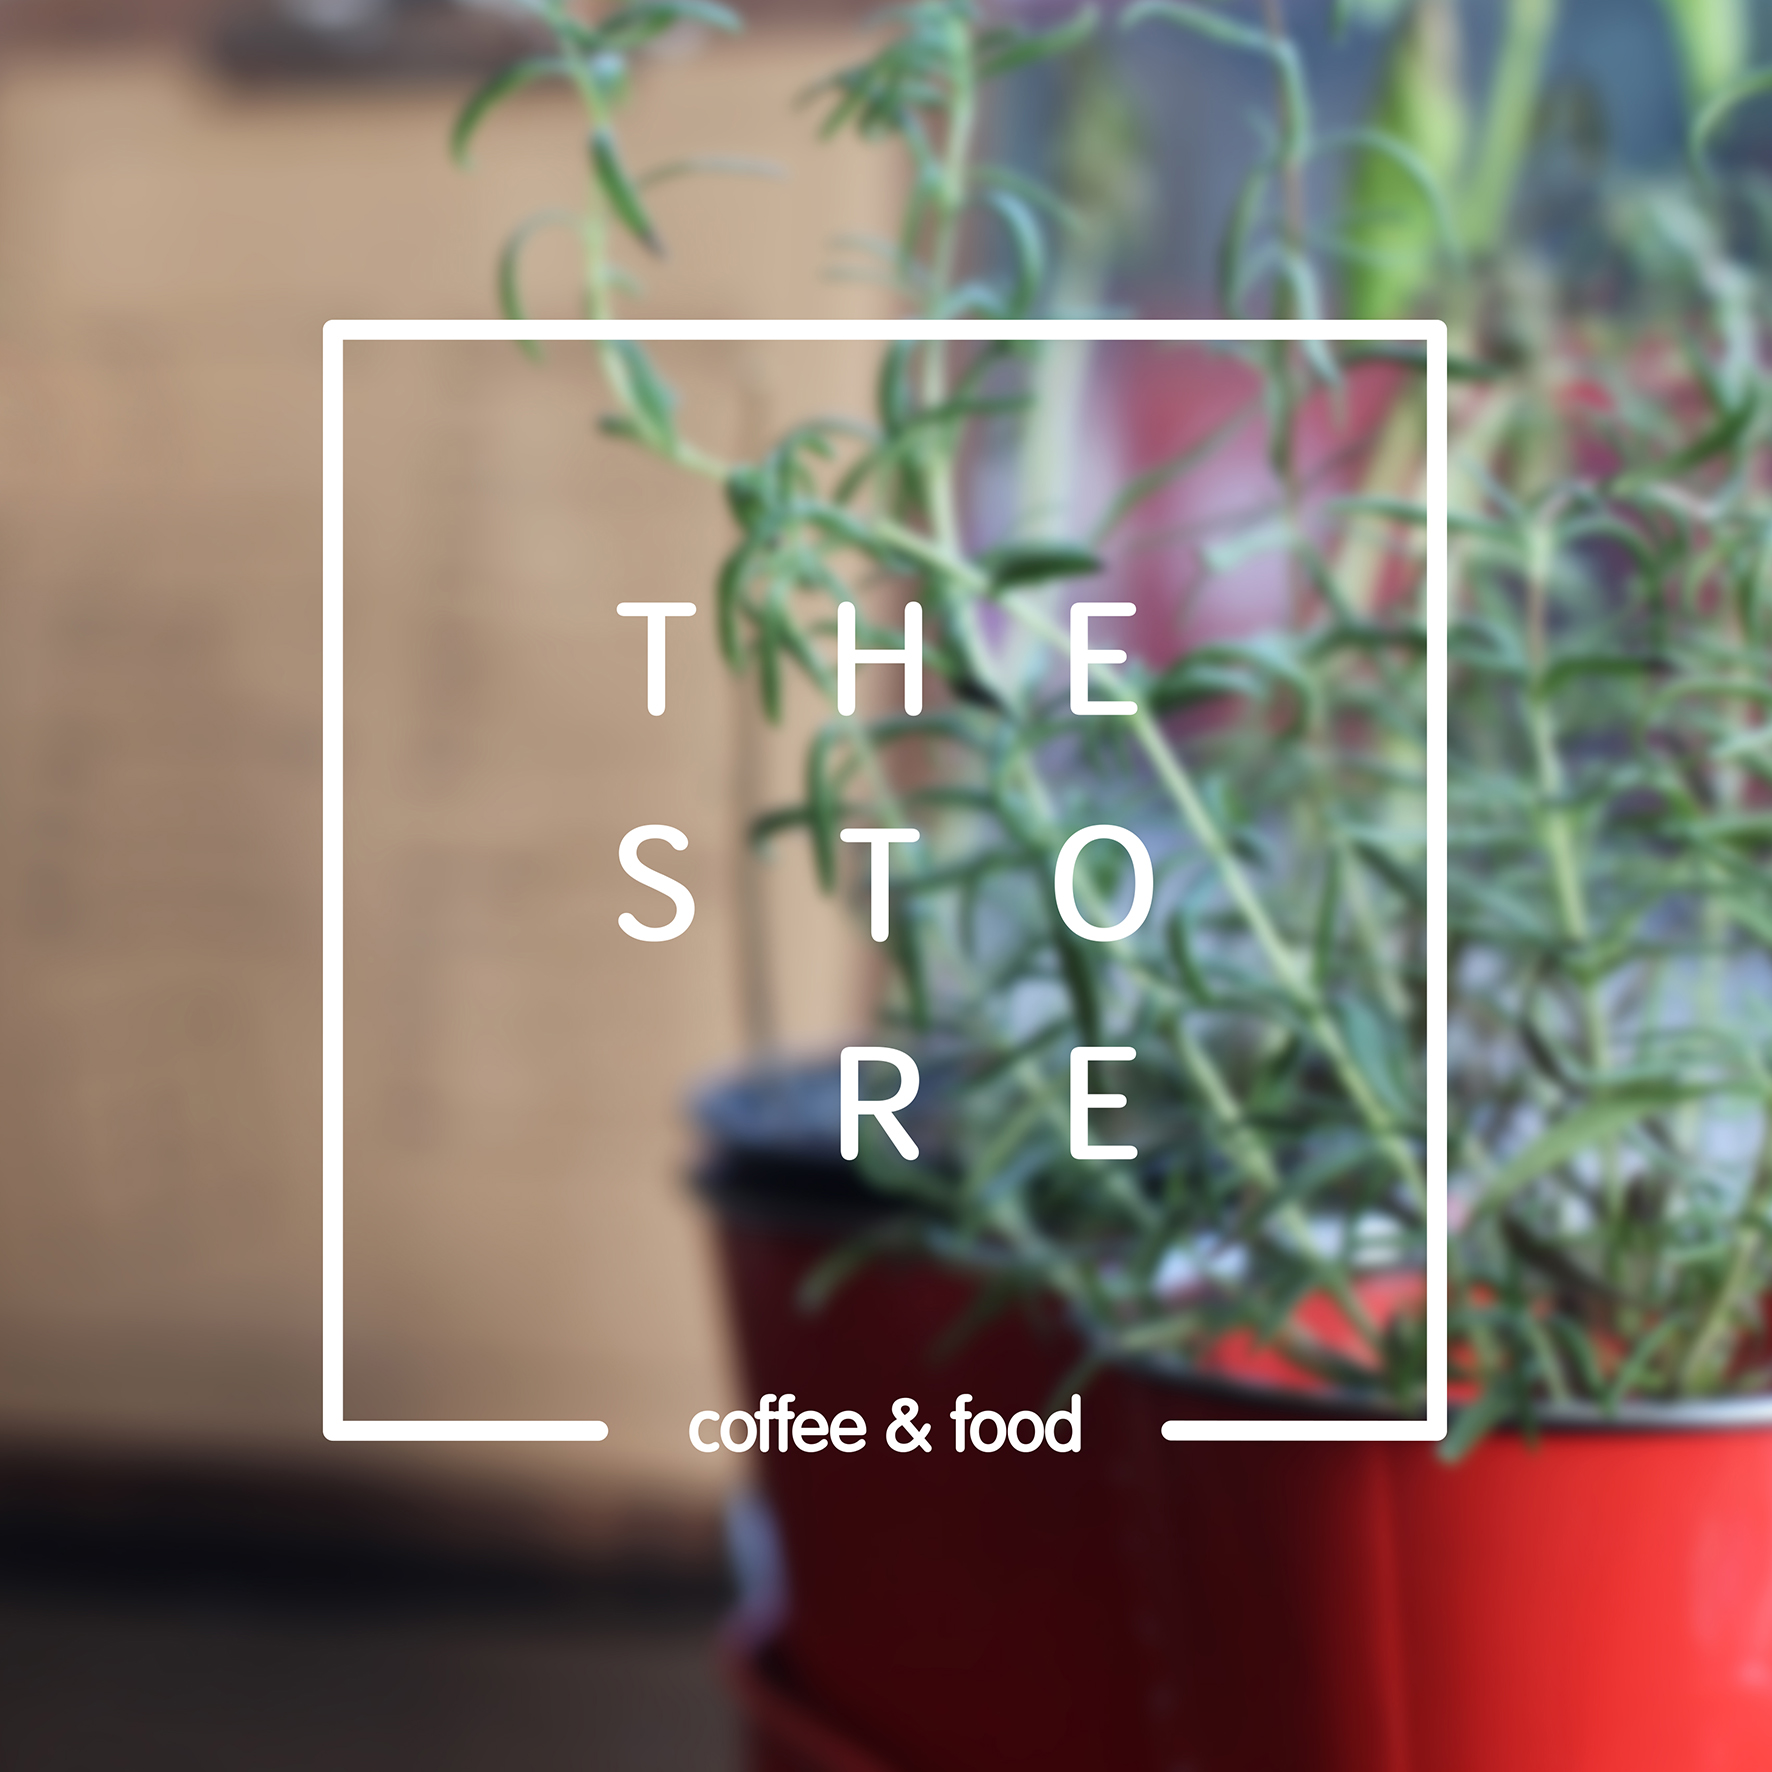 The Store, coffee & food   Identity design, London, 2015   The Store is an independent coffee shop with a goal in bringing friendly coffee and food experience in Bethnal Green. The convivial, home-like space established itself as an opportunity to bring communities and like-minded people together in a warm and family atmosphere.  The brand identity responds to the qualities of the coffee space while taking on a minimal typographic approach that remain discreet and allow the human experience to speak for itself.